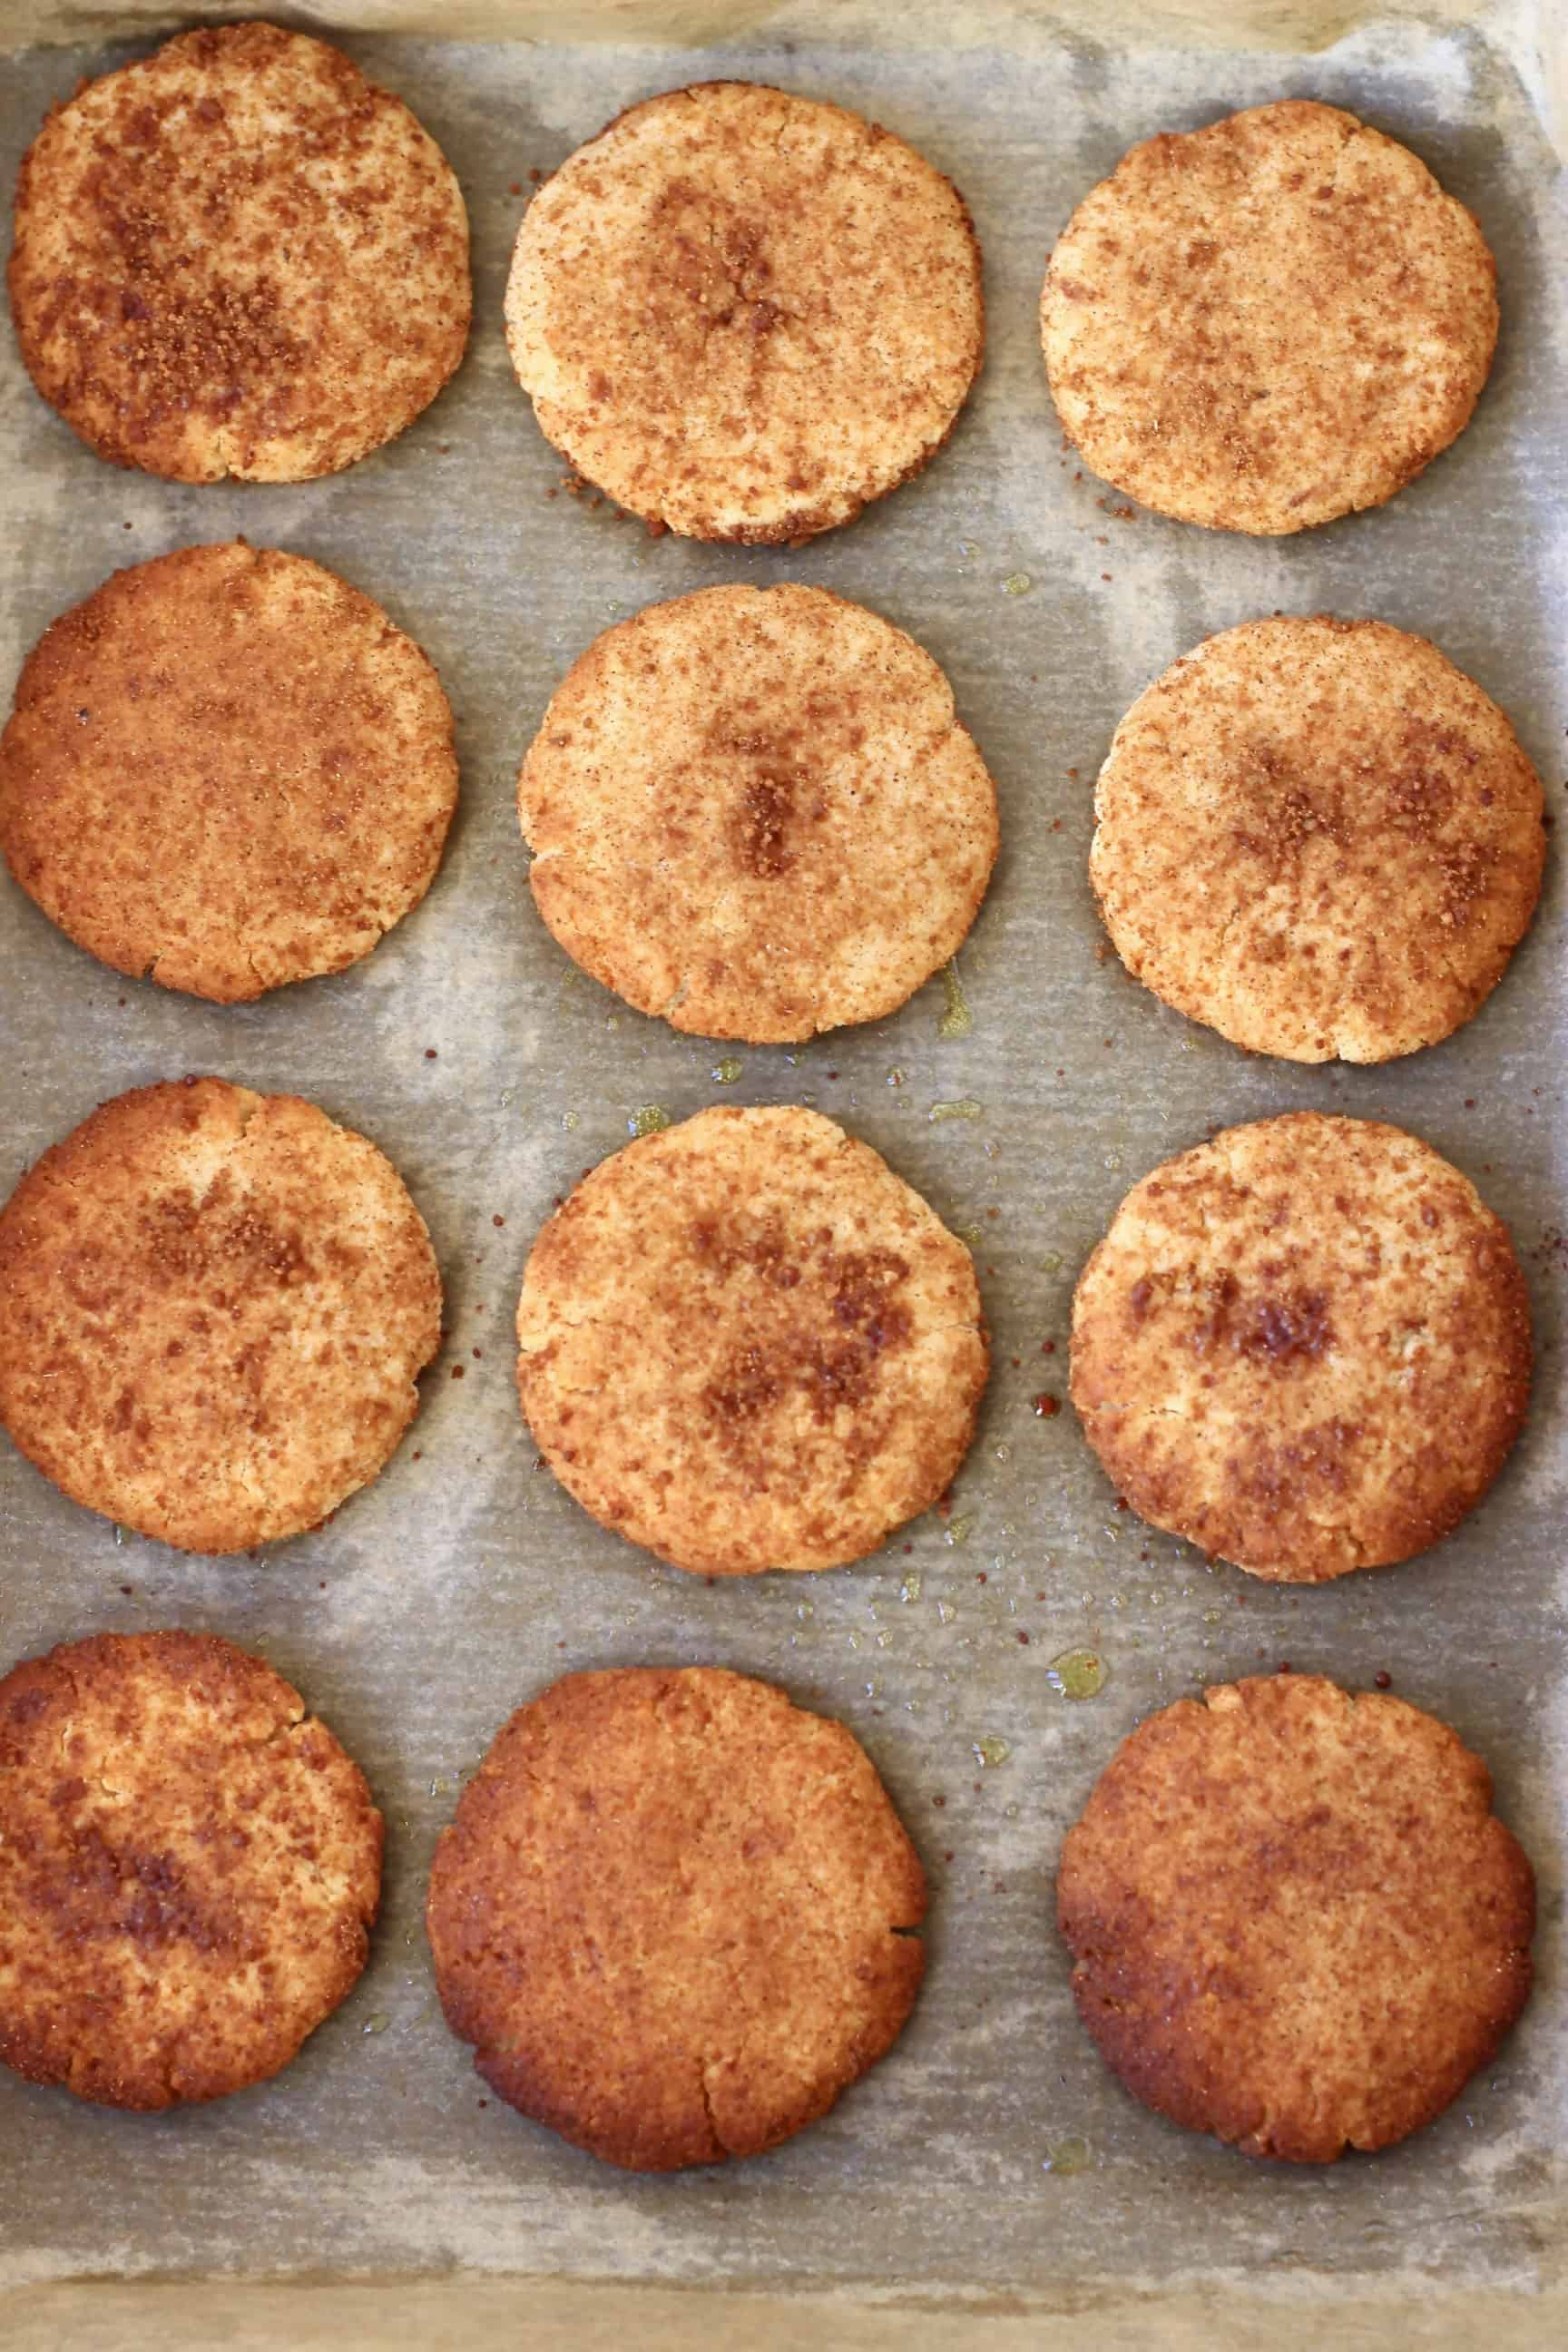 Twelve gluten-free vegan snickerdoodles on a baking tray lined with baking paper